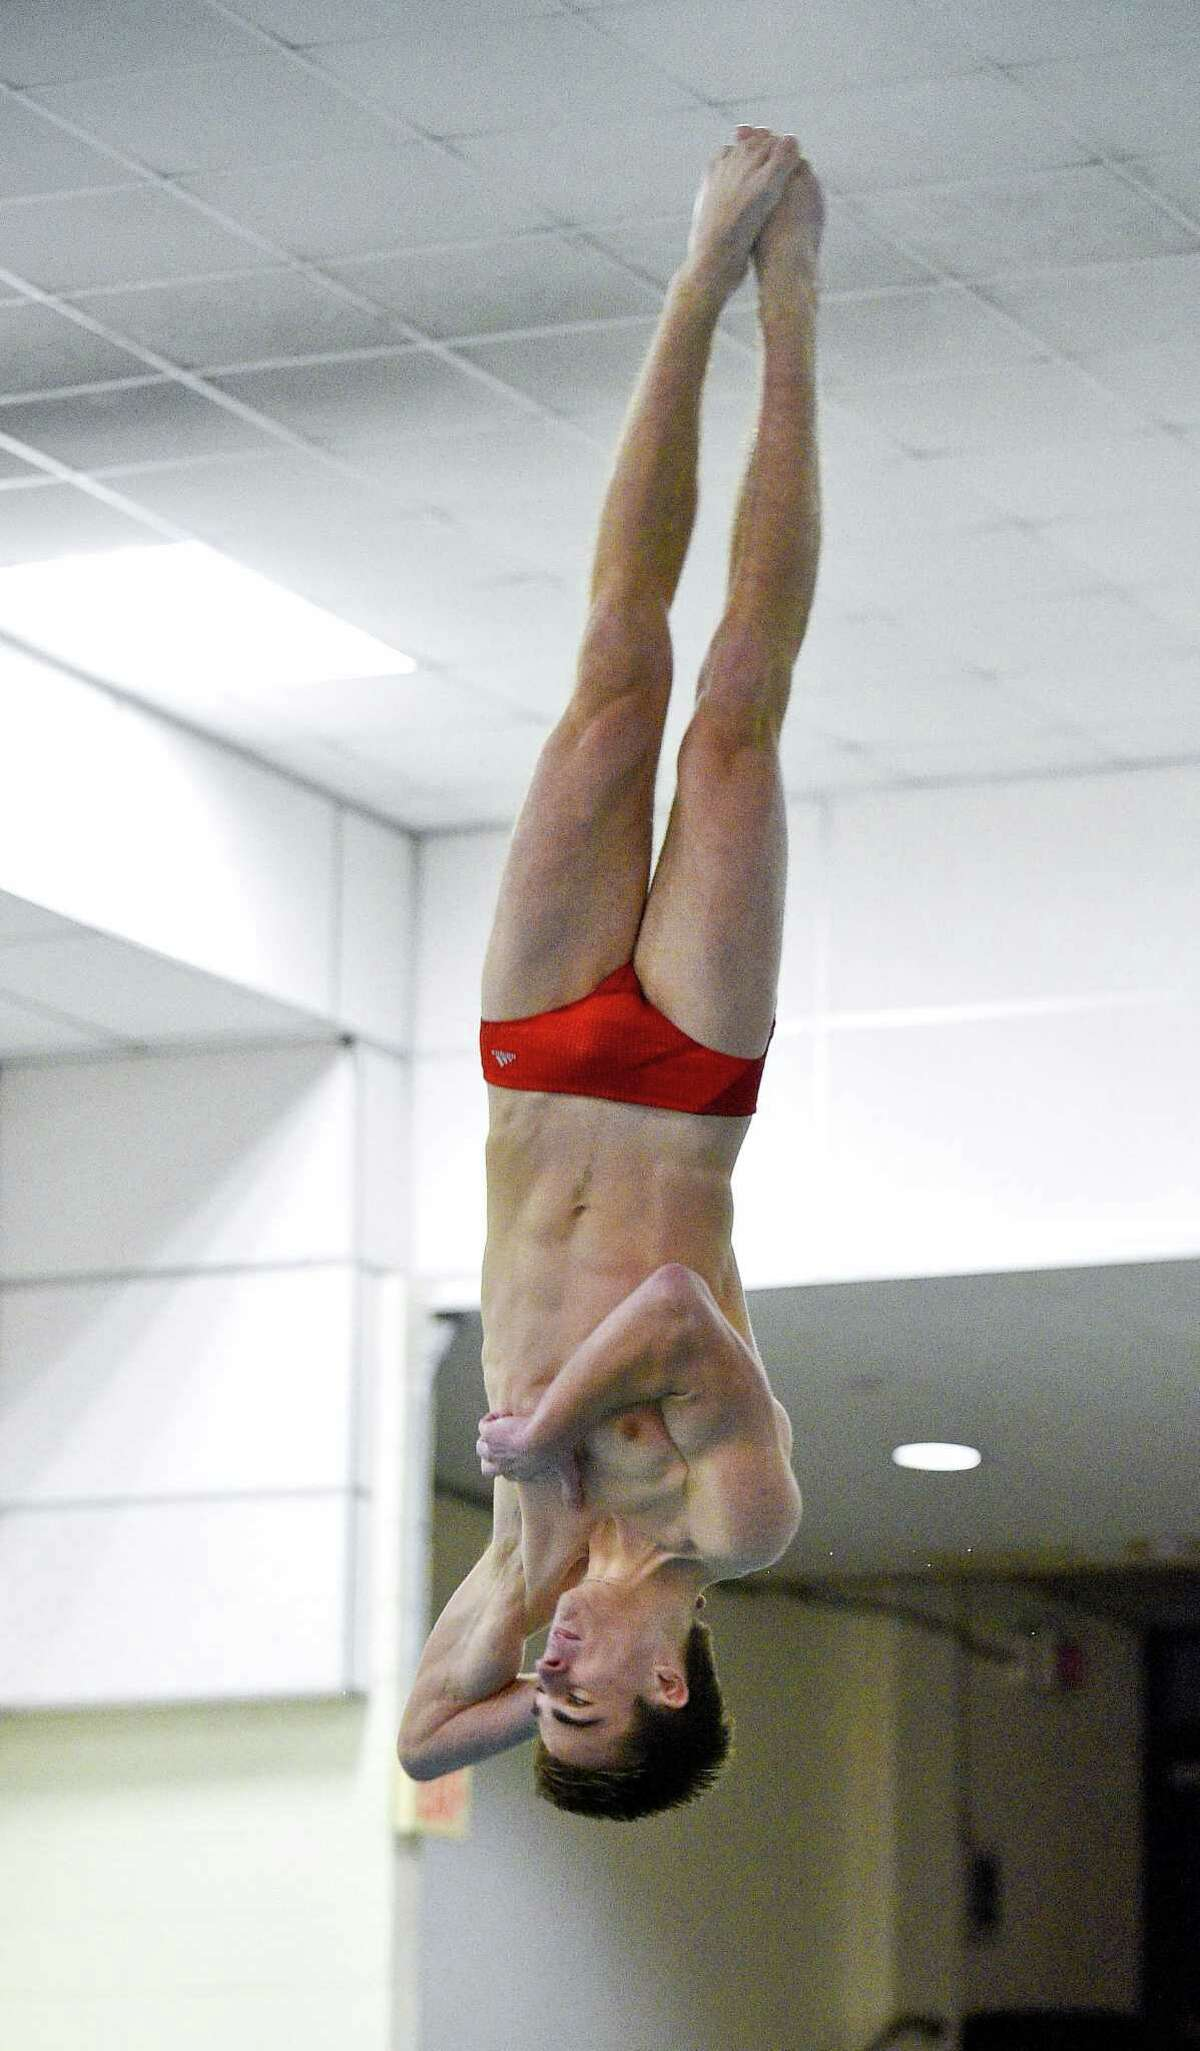 McMahon-Norwalk diver Kevin Bradley competes during a FCIAC boys swimming and diving meet against Westhill-SHS at Westhill High School in Stamford, Conn. on Wednesday, Jan. 17, 2018.